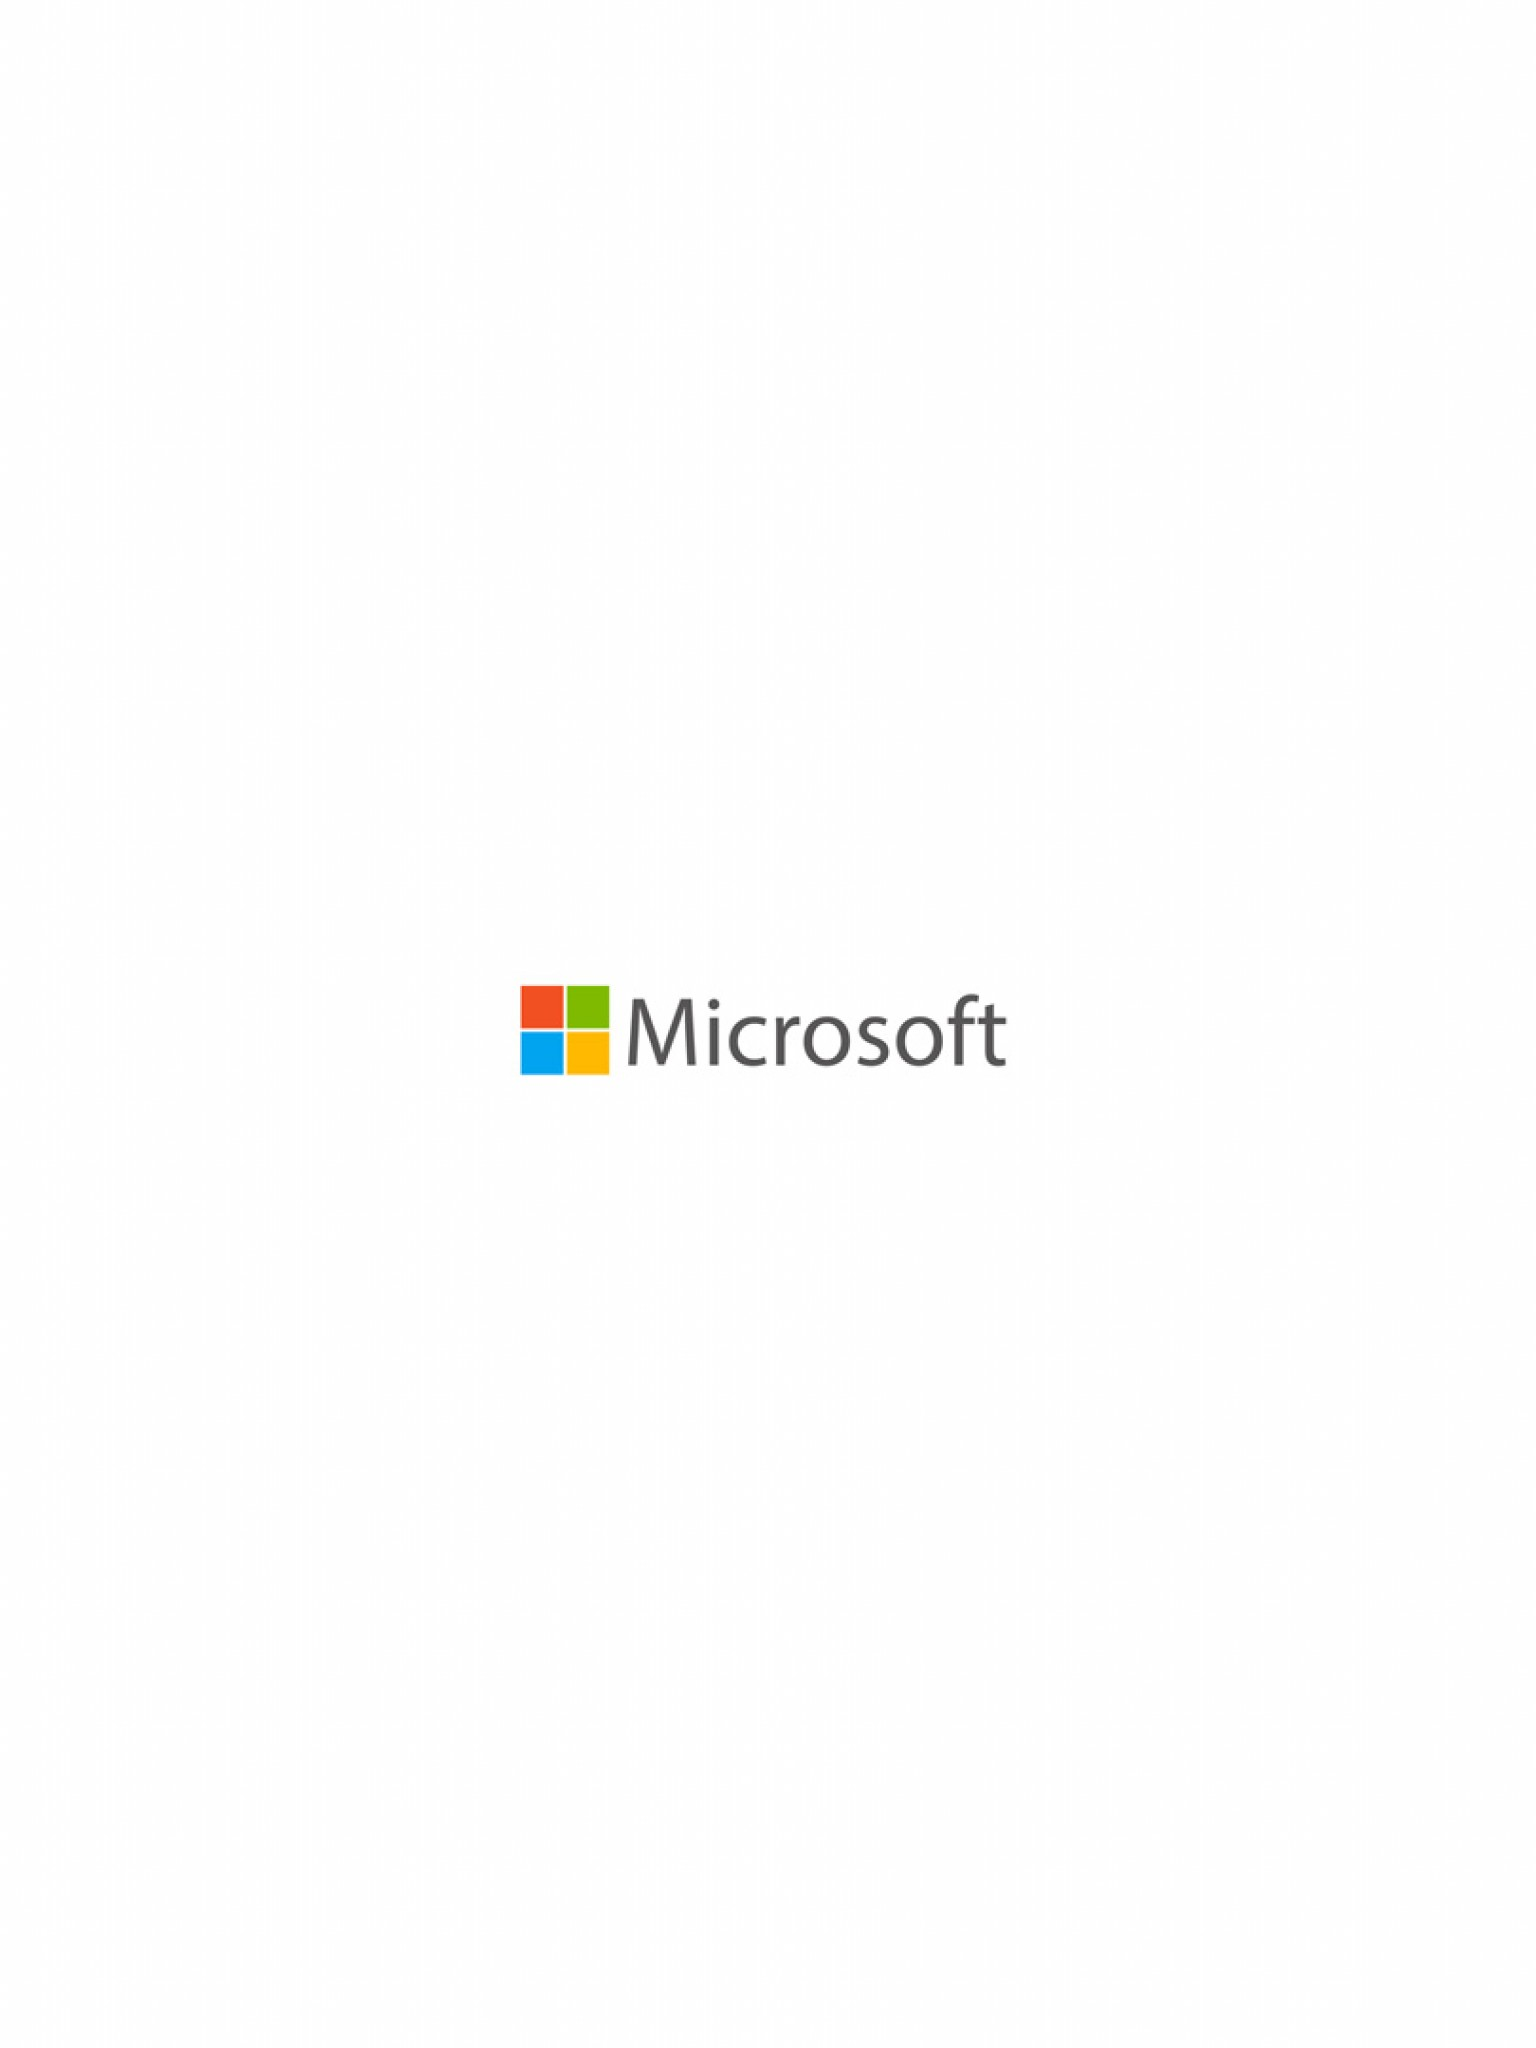 download free microsoft logo wallpaper for desktop and